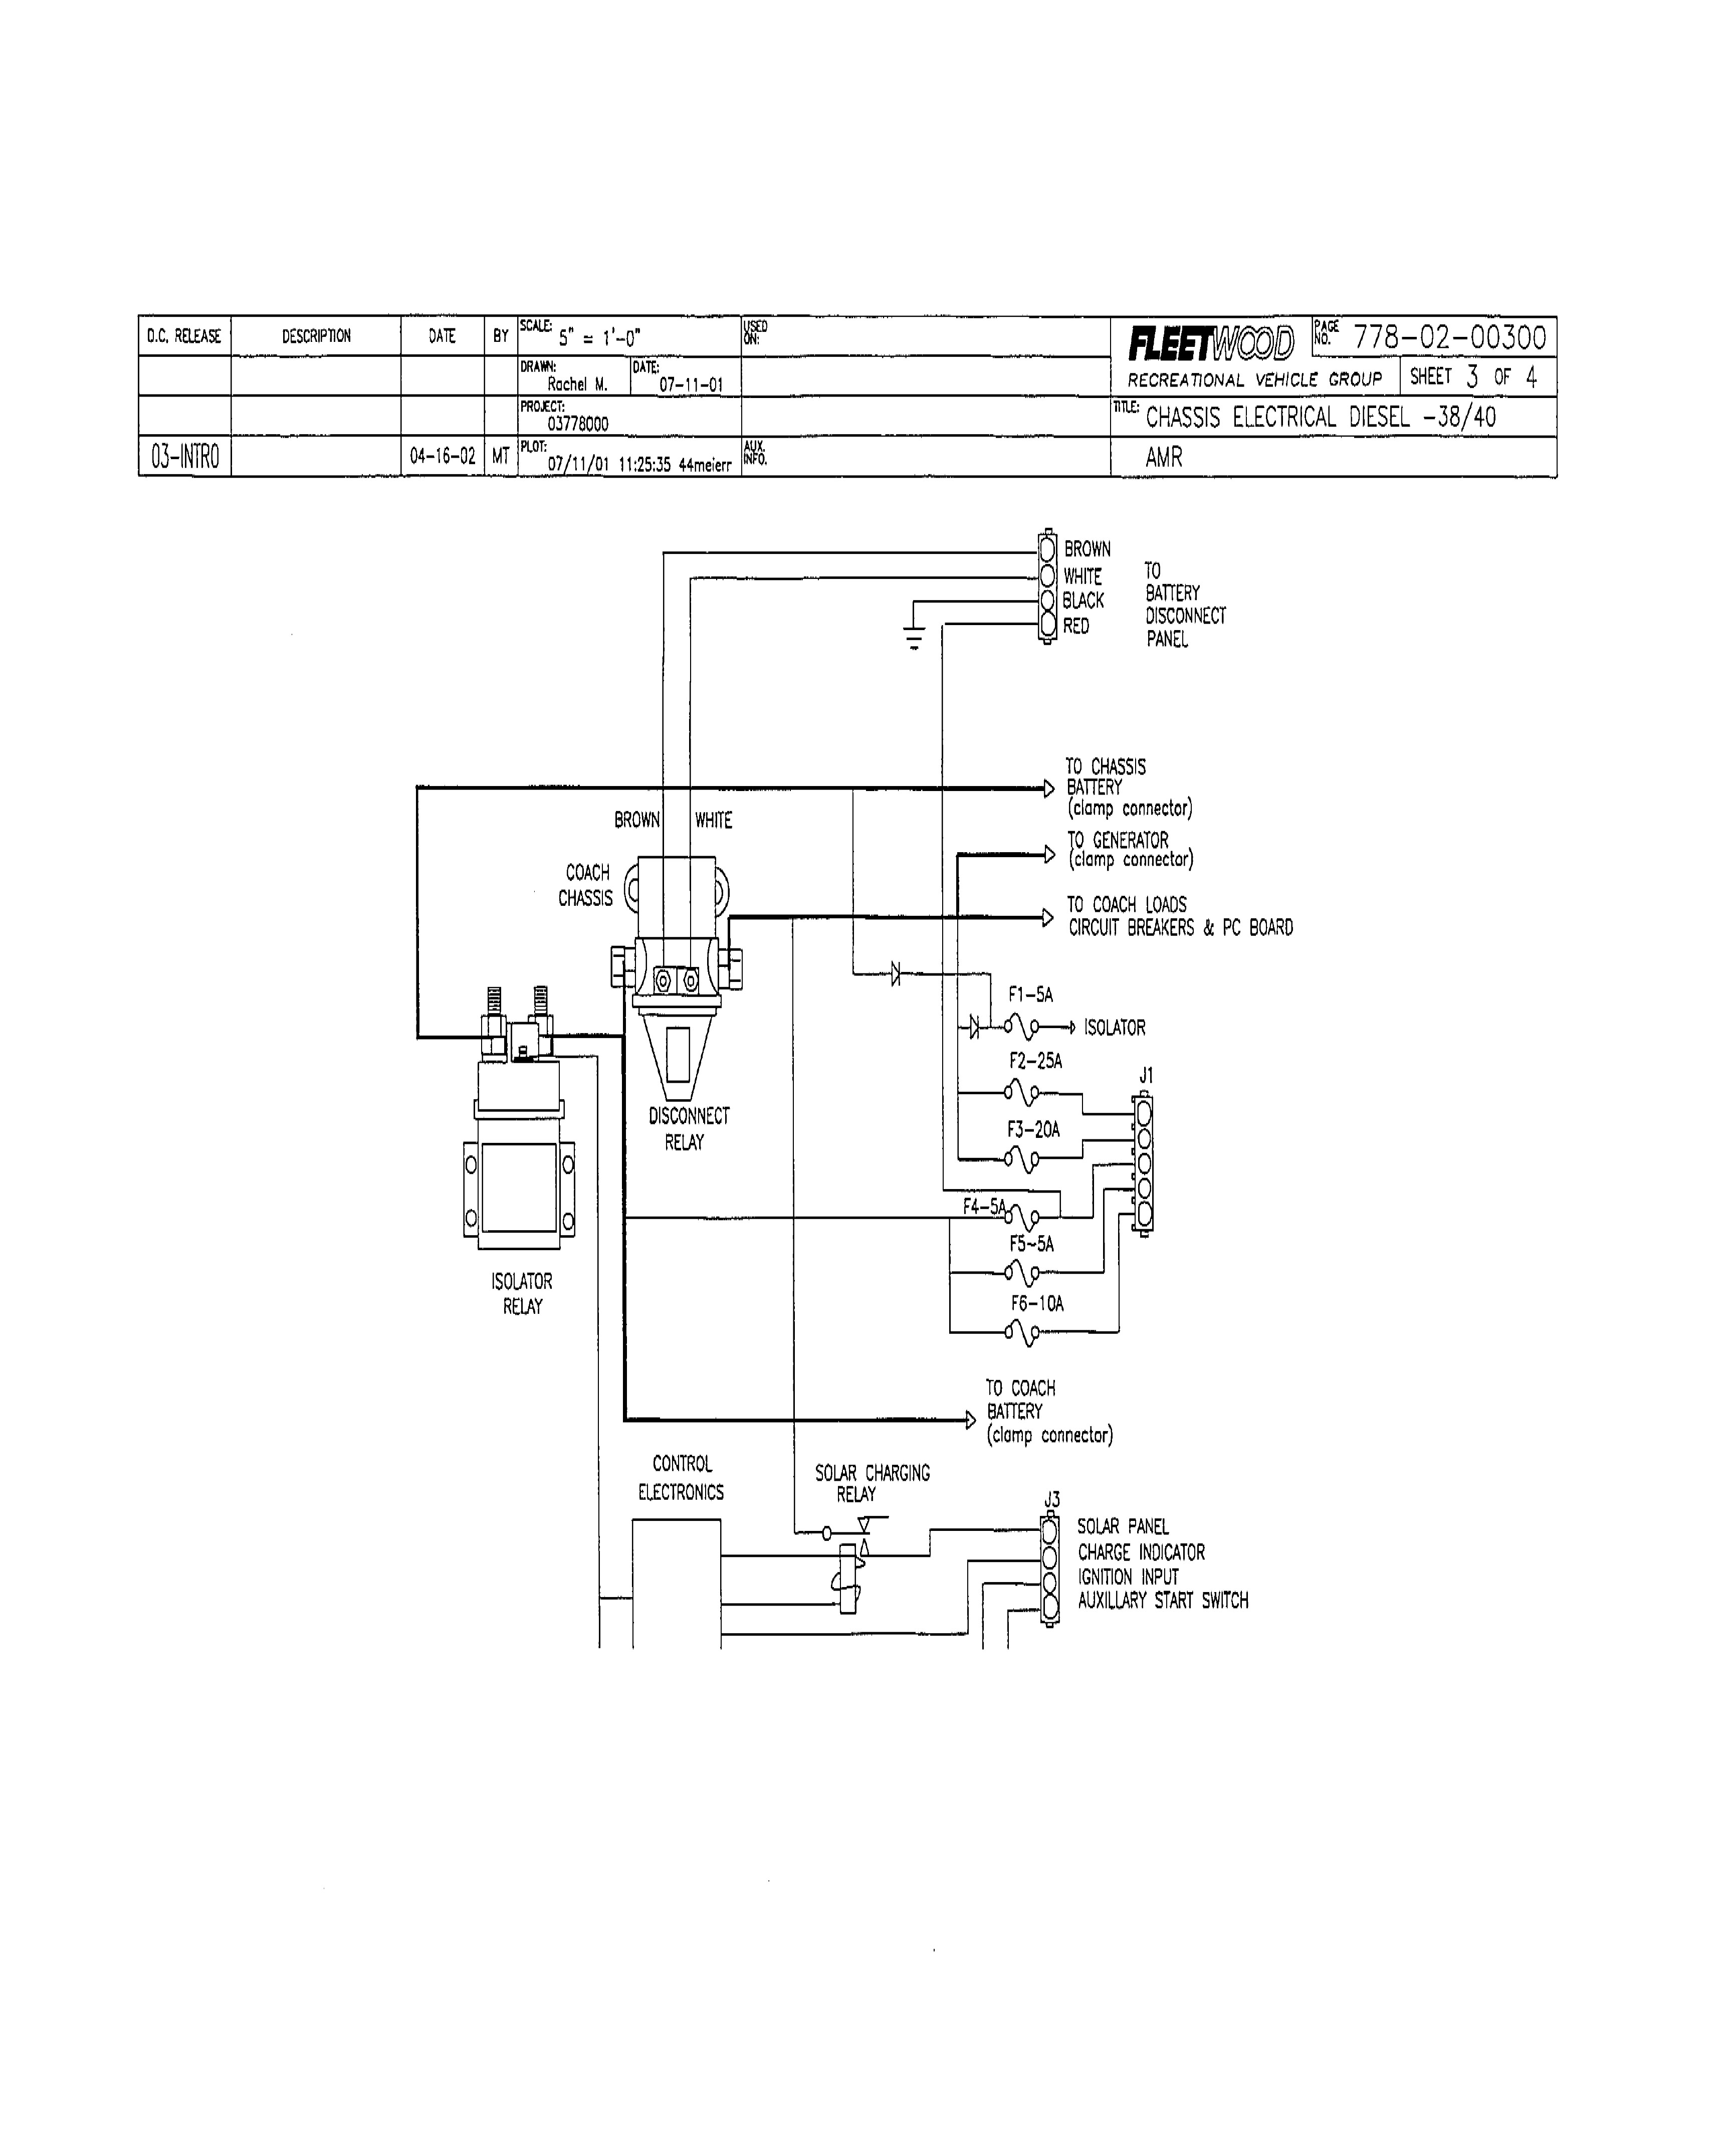 2009 fleetwood wiring diagram i need a diagram of the battery installation on a 2002 ... 88 fleetwood wiring diagram